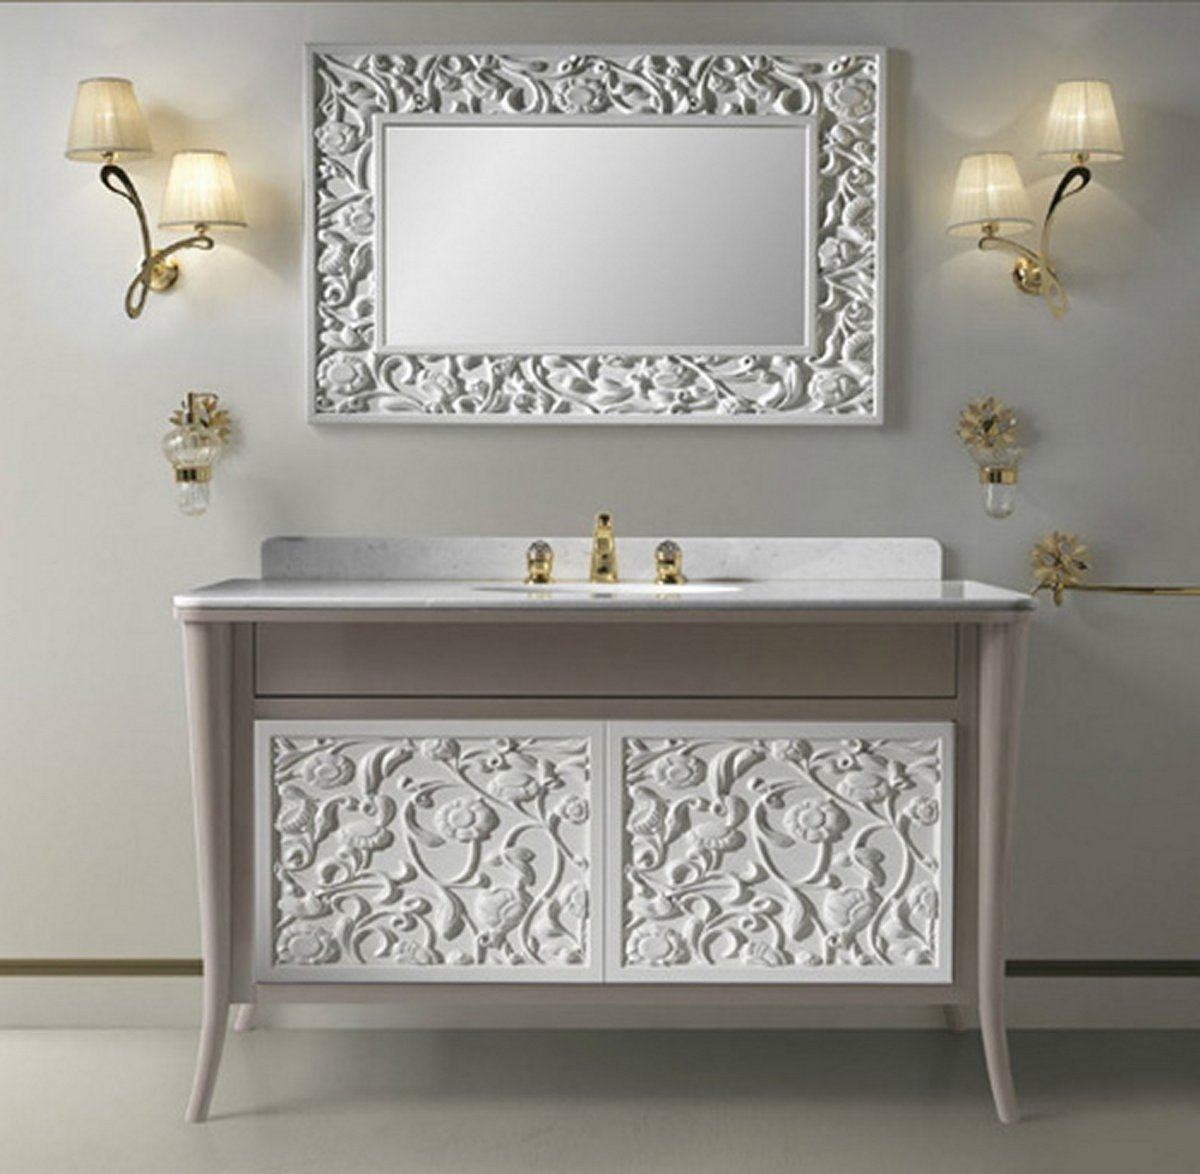 Lovely Bathroom Cabinets Vintage Style Bathroom Cabinets — The Kienandsweet with Furniture Style Bathroom Vanities